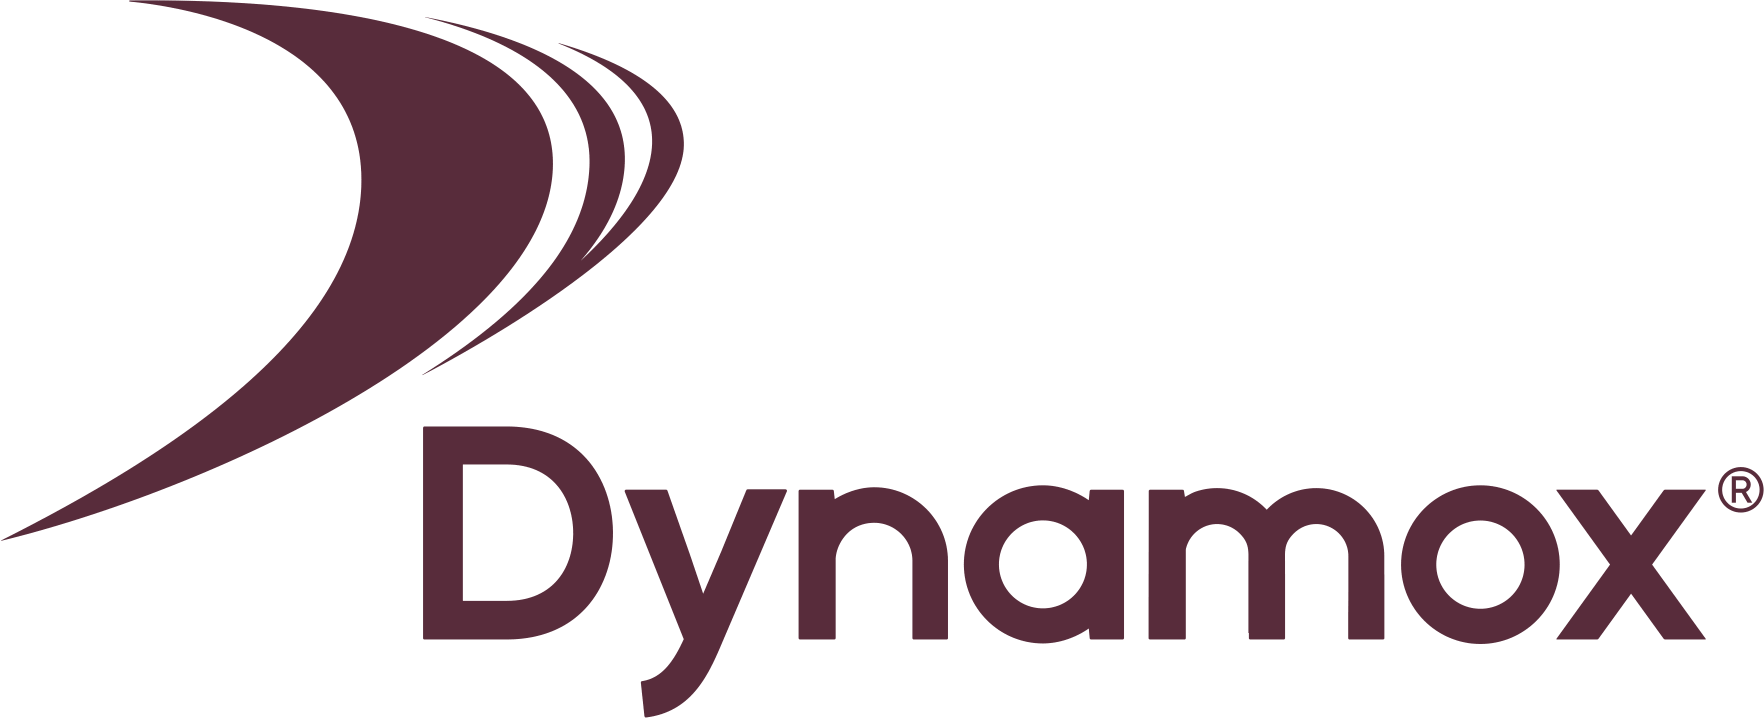 Dynamox Help Center home page